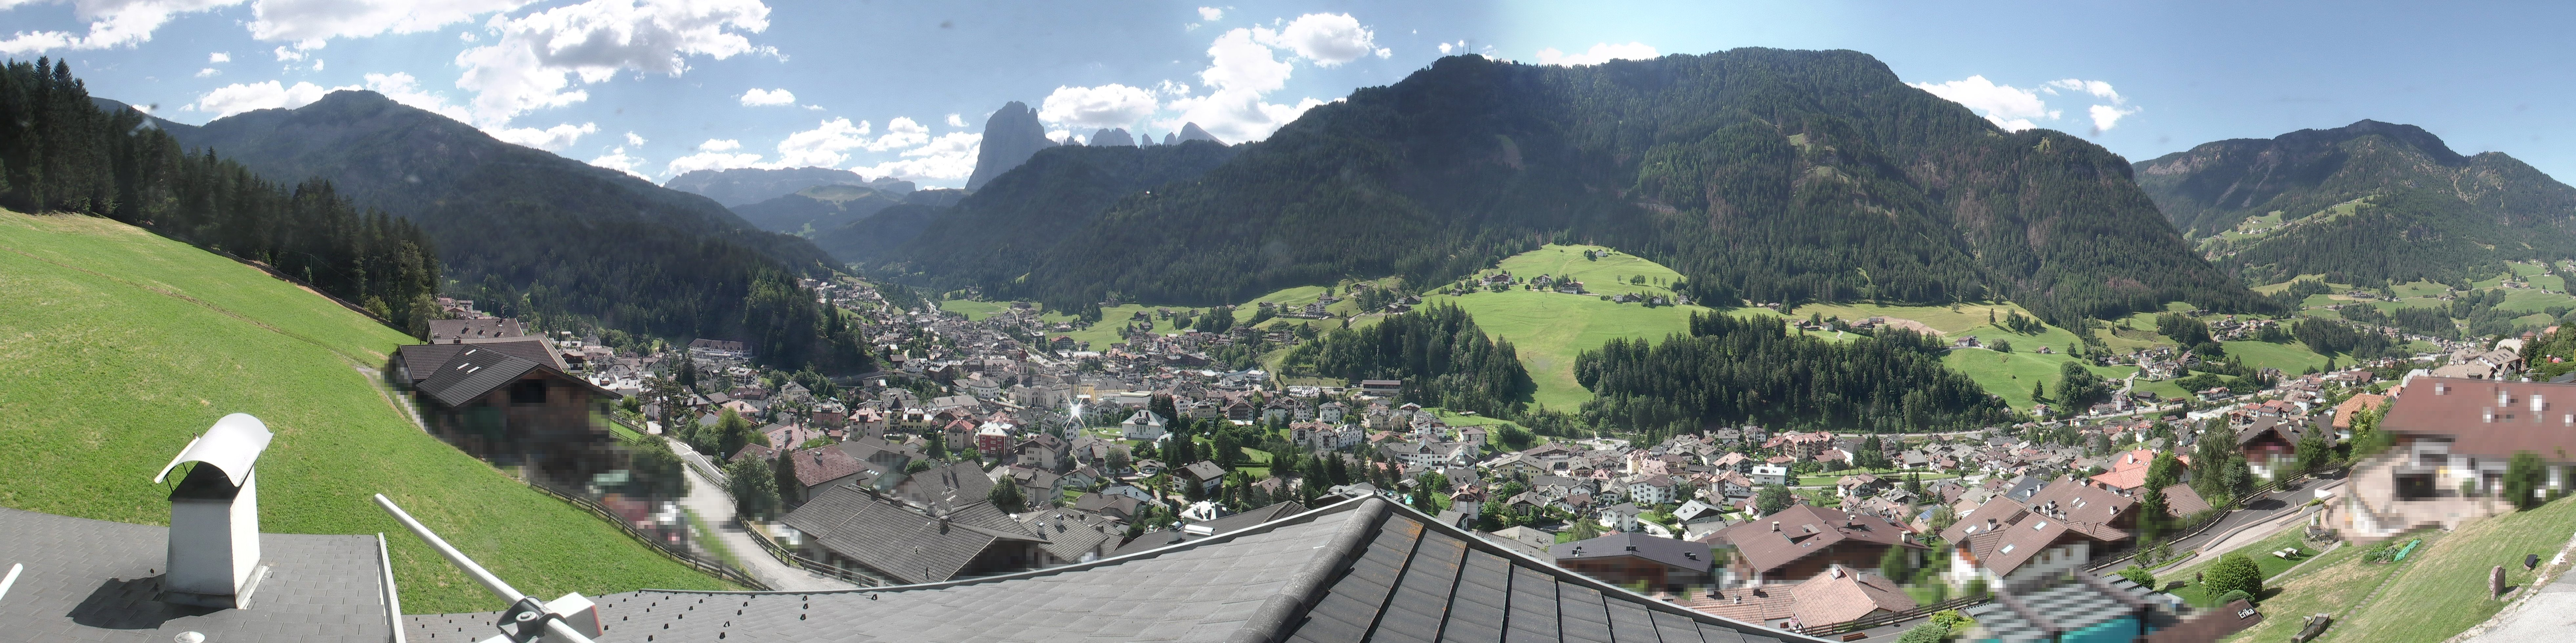 Webcam panoramica su Ortisei - Val Gardena - Dolomiti Superski